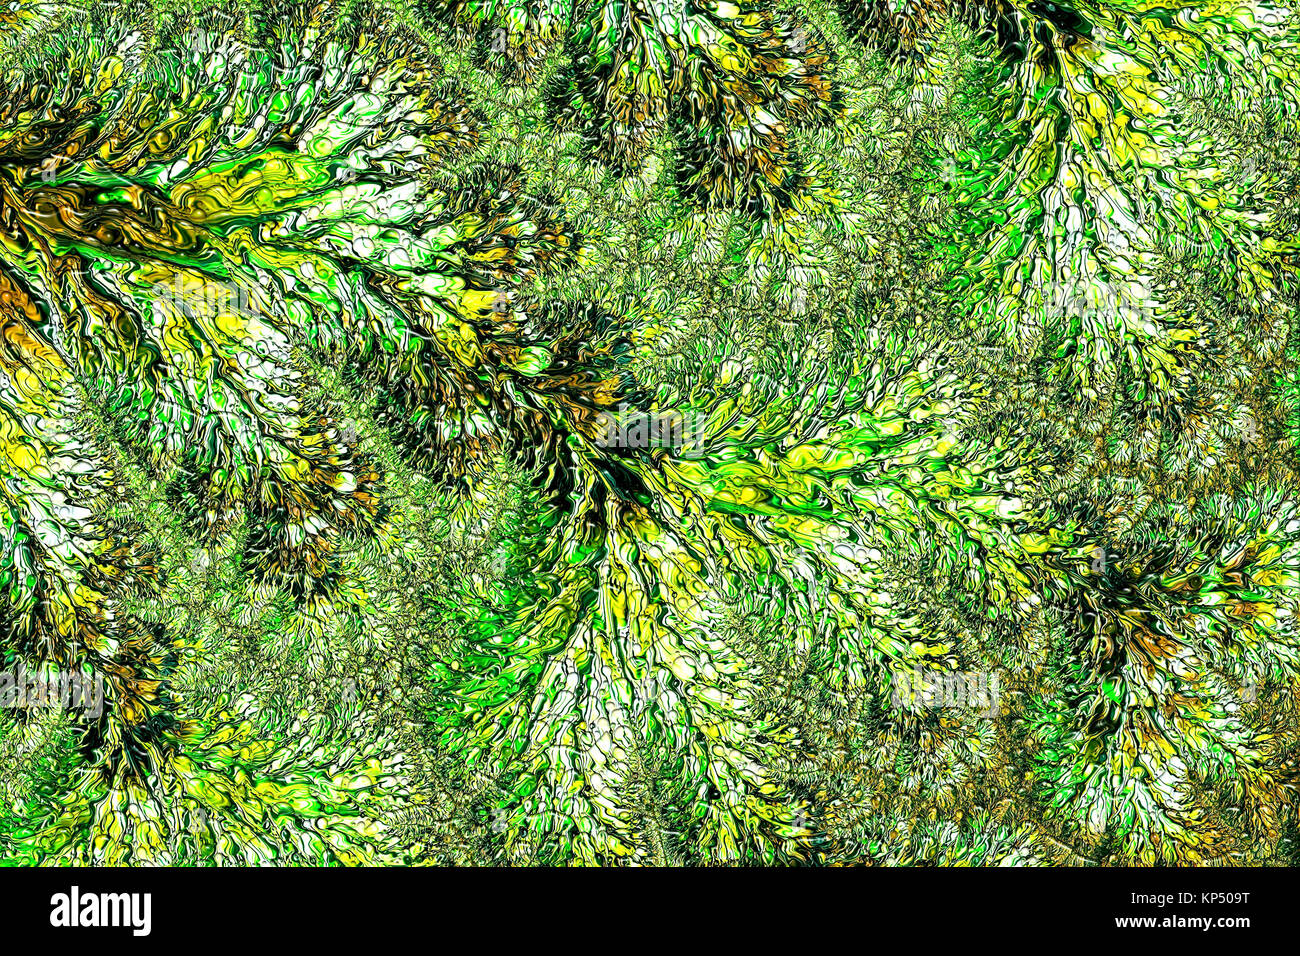 Fractal texture - abstract digitally generated image - Stock Image